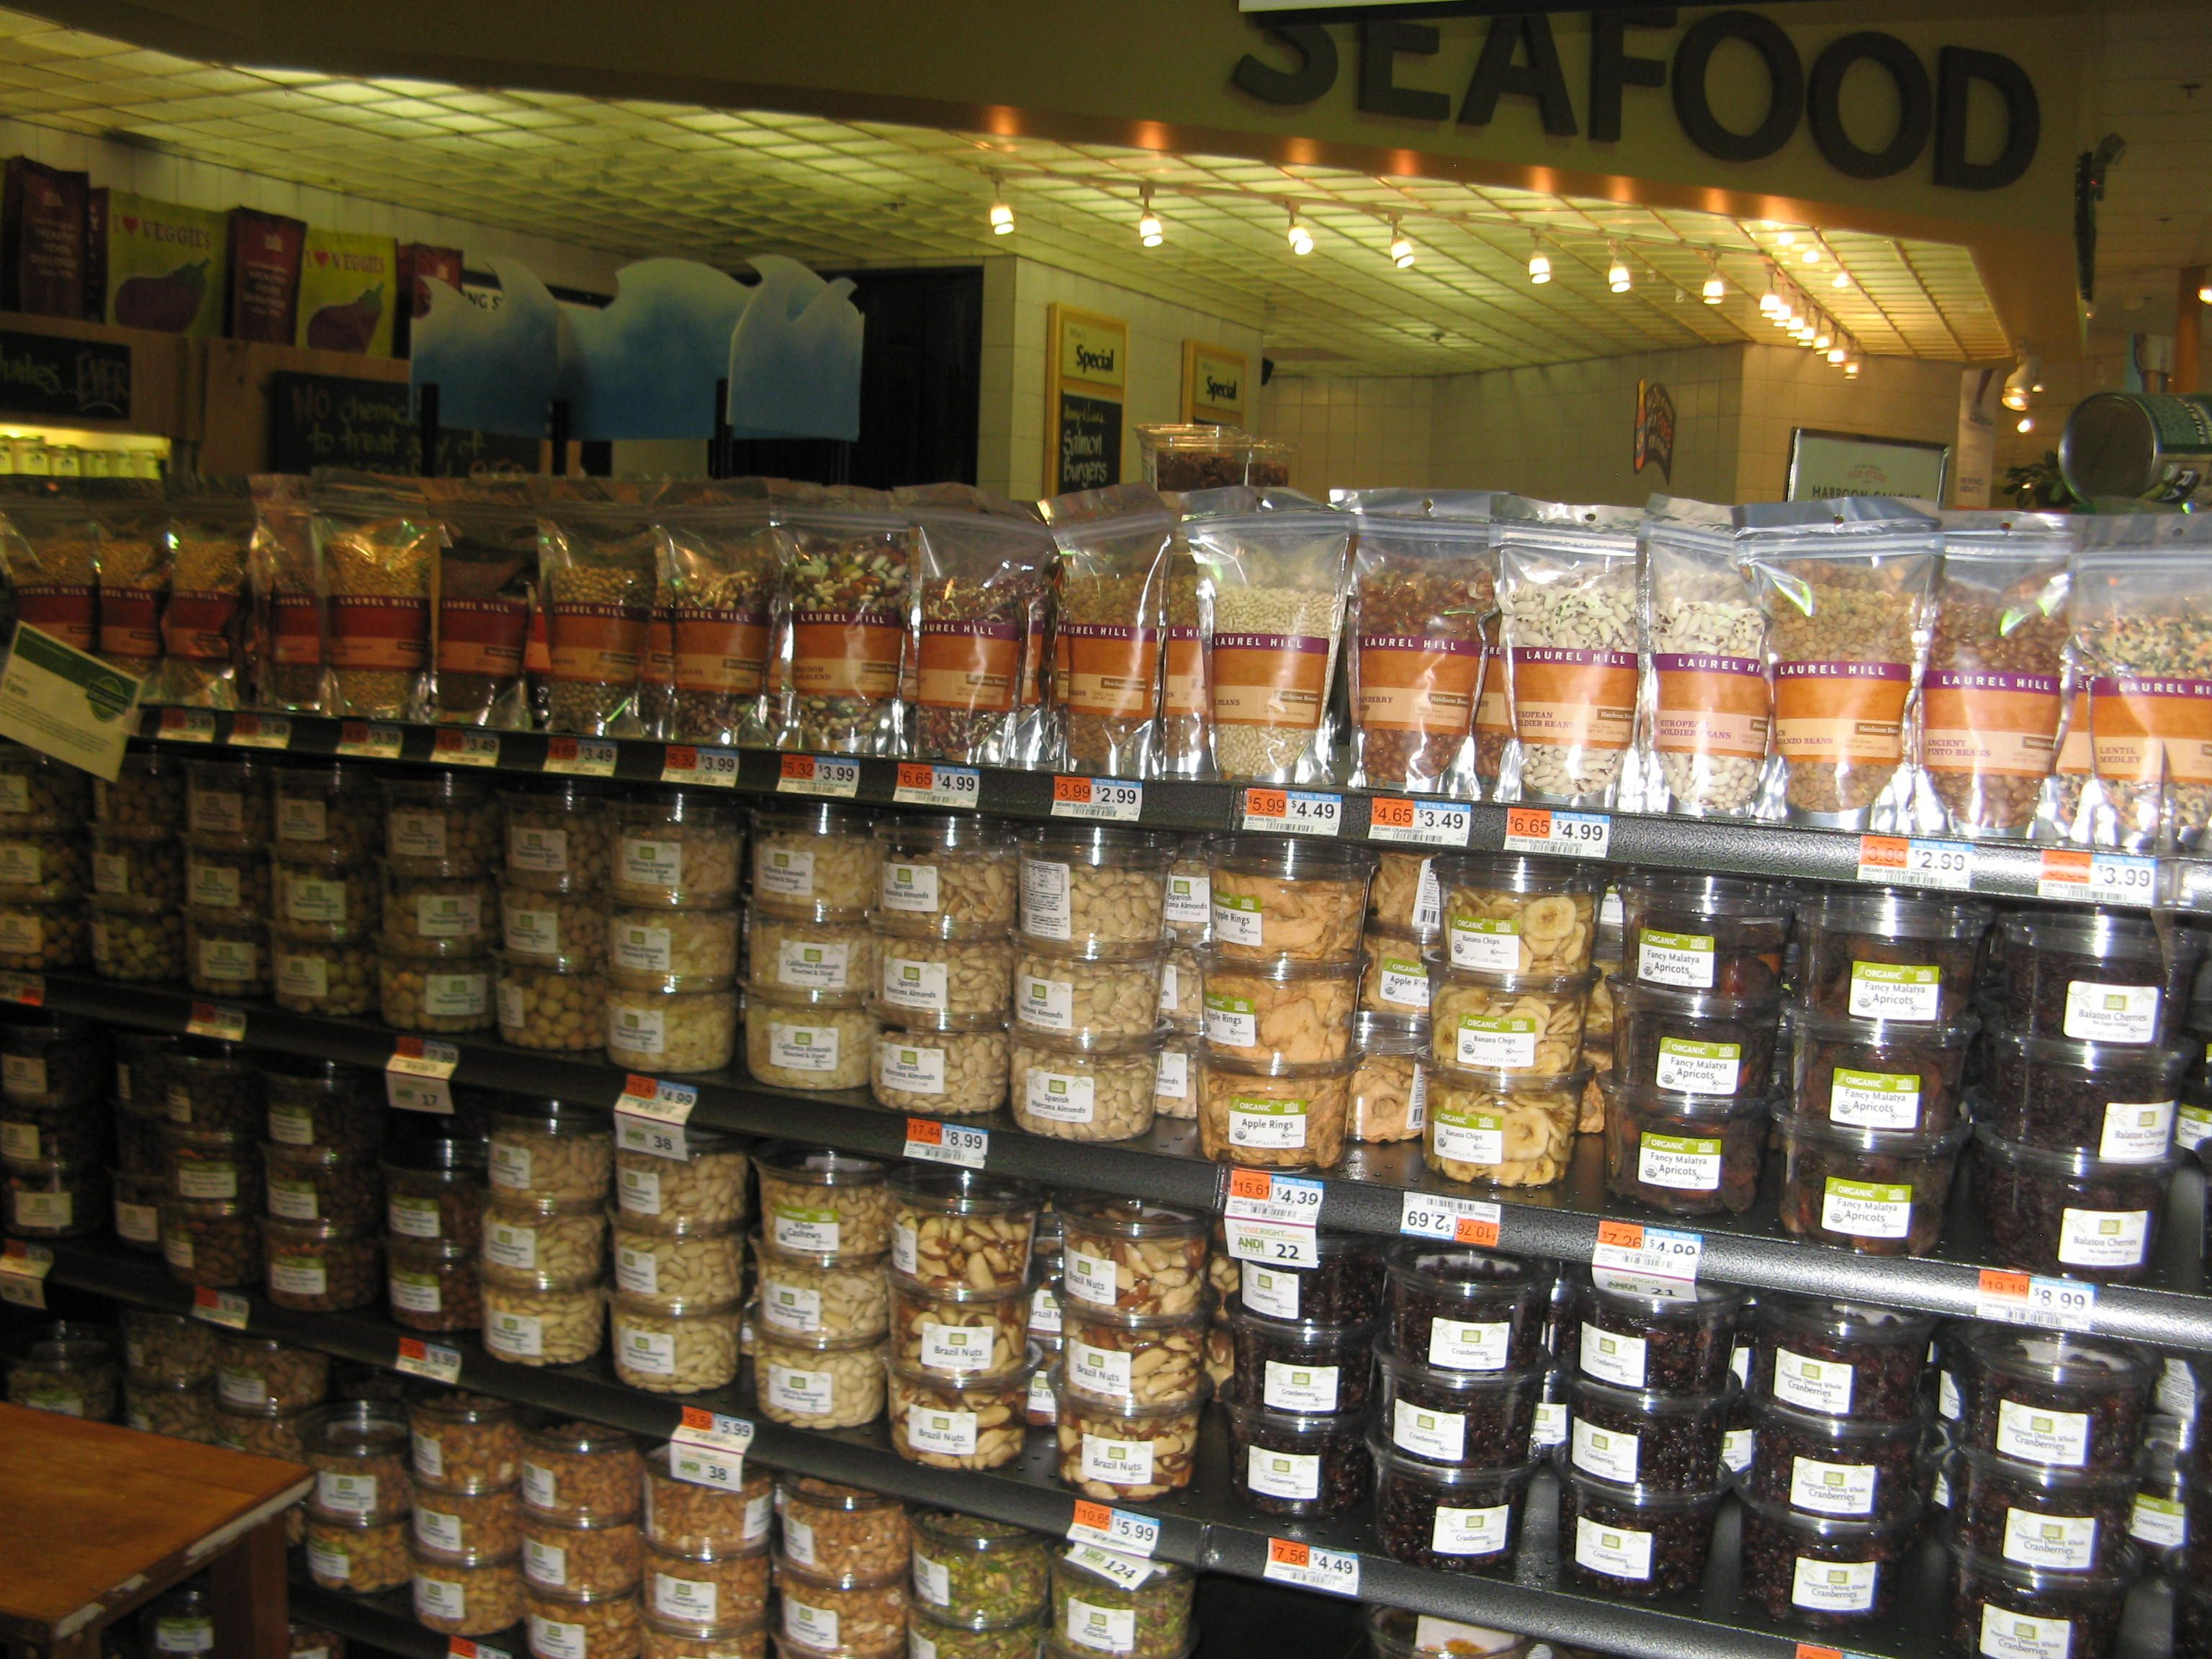 Laurel Hill beans and grains cross merchandised with bulk